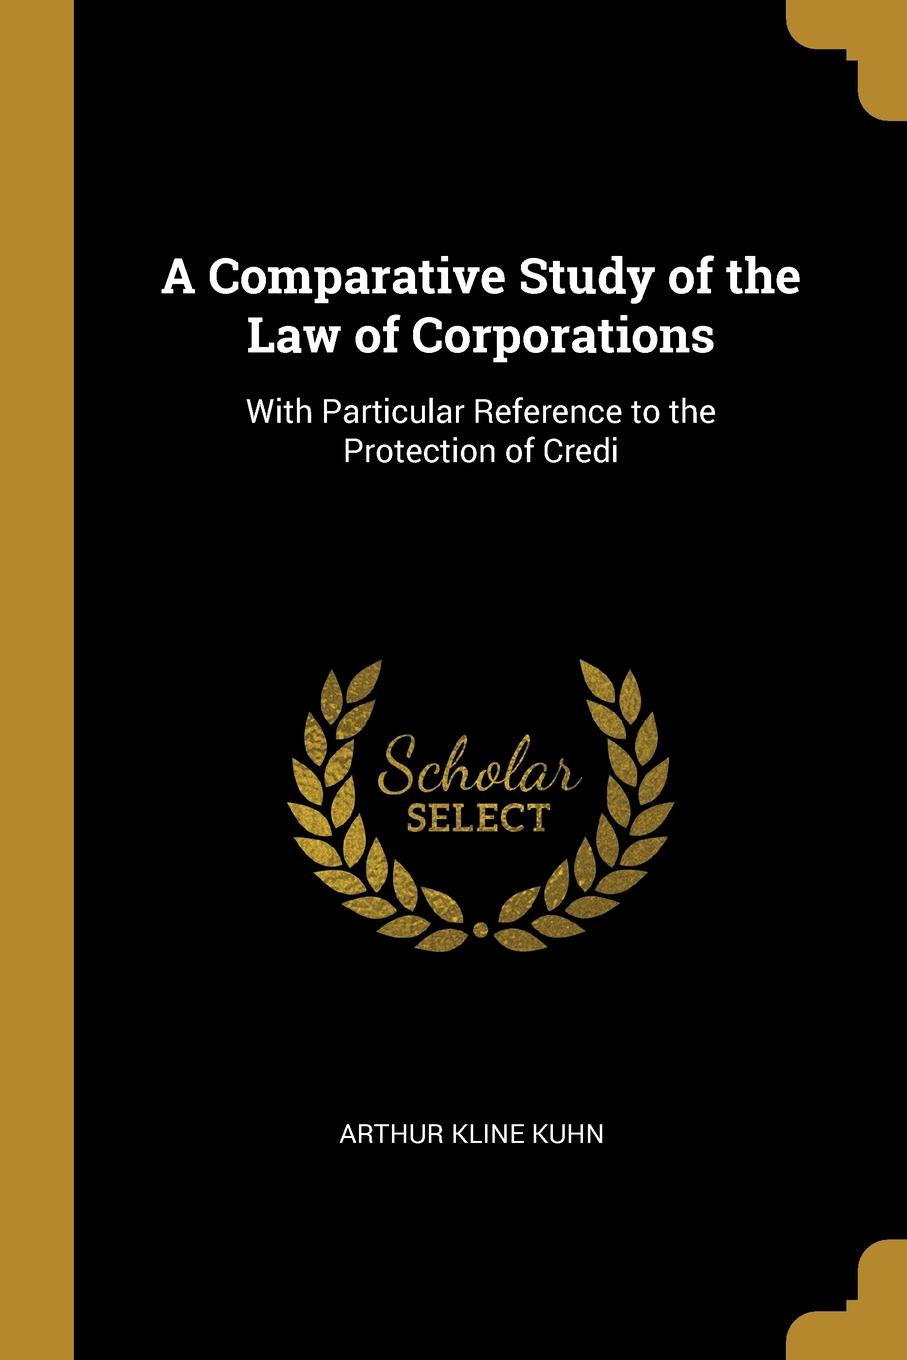 Arthur Kline Kuhn A Comparative Study of the Law of Corporations. With Particular Reference to the Protection of Credi